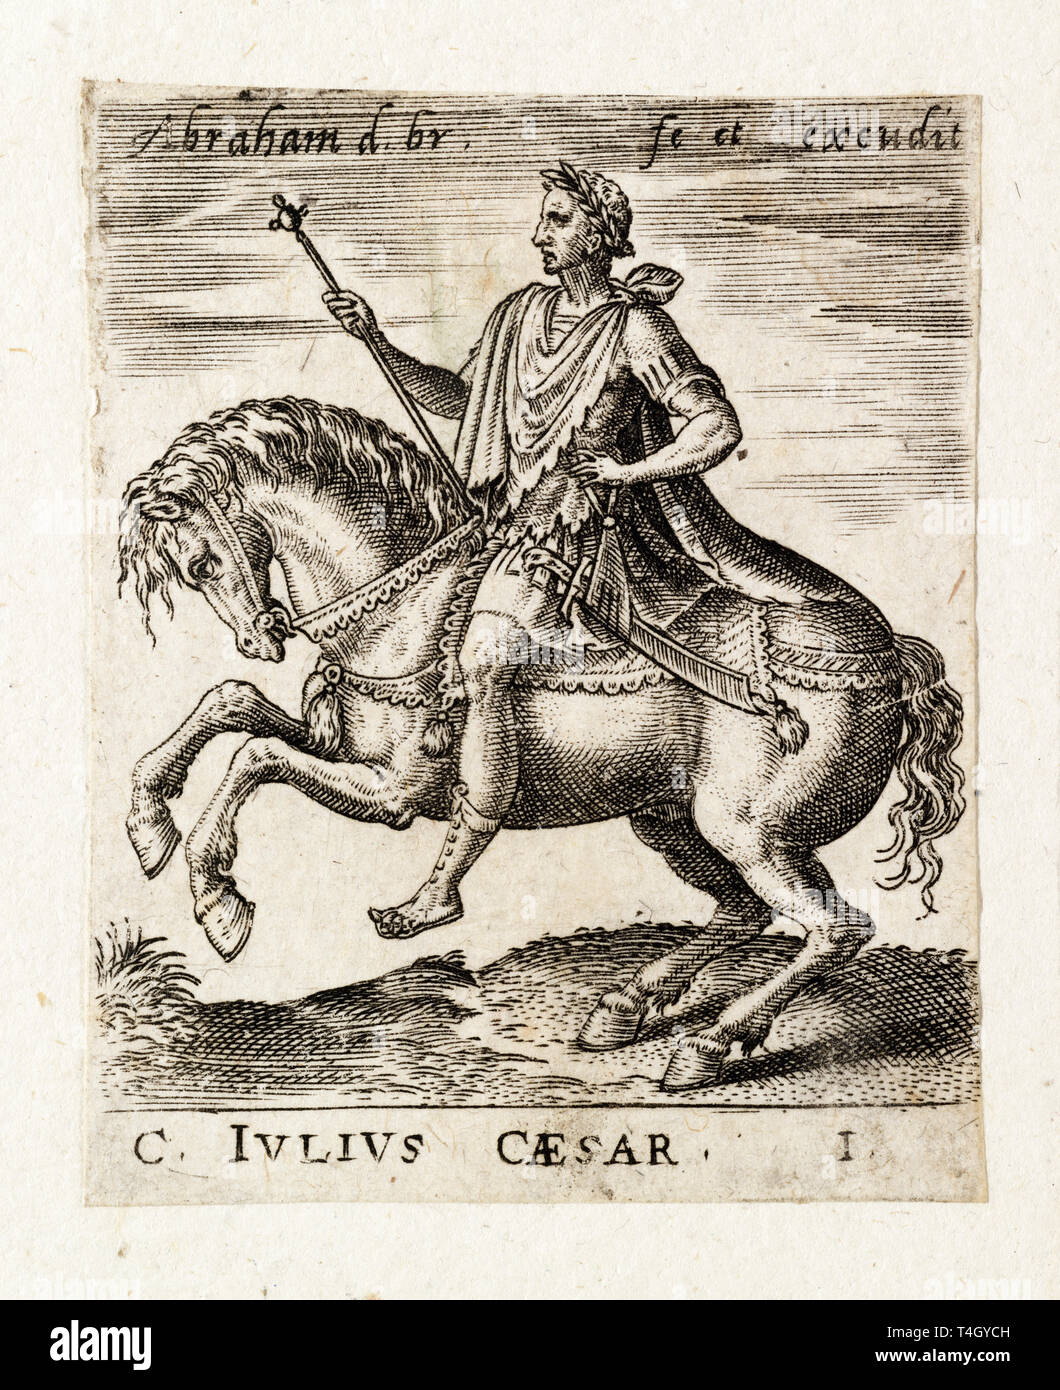 Julius Caesar from Twelve Caesars on Horseback, engraving by Abraham de Bruyn, c. 1565 Stock Photo